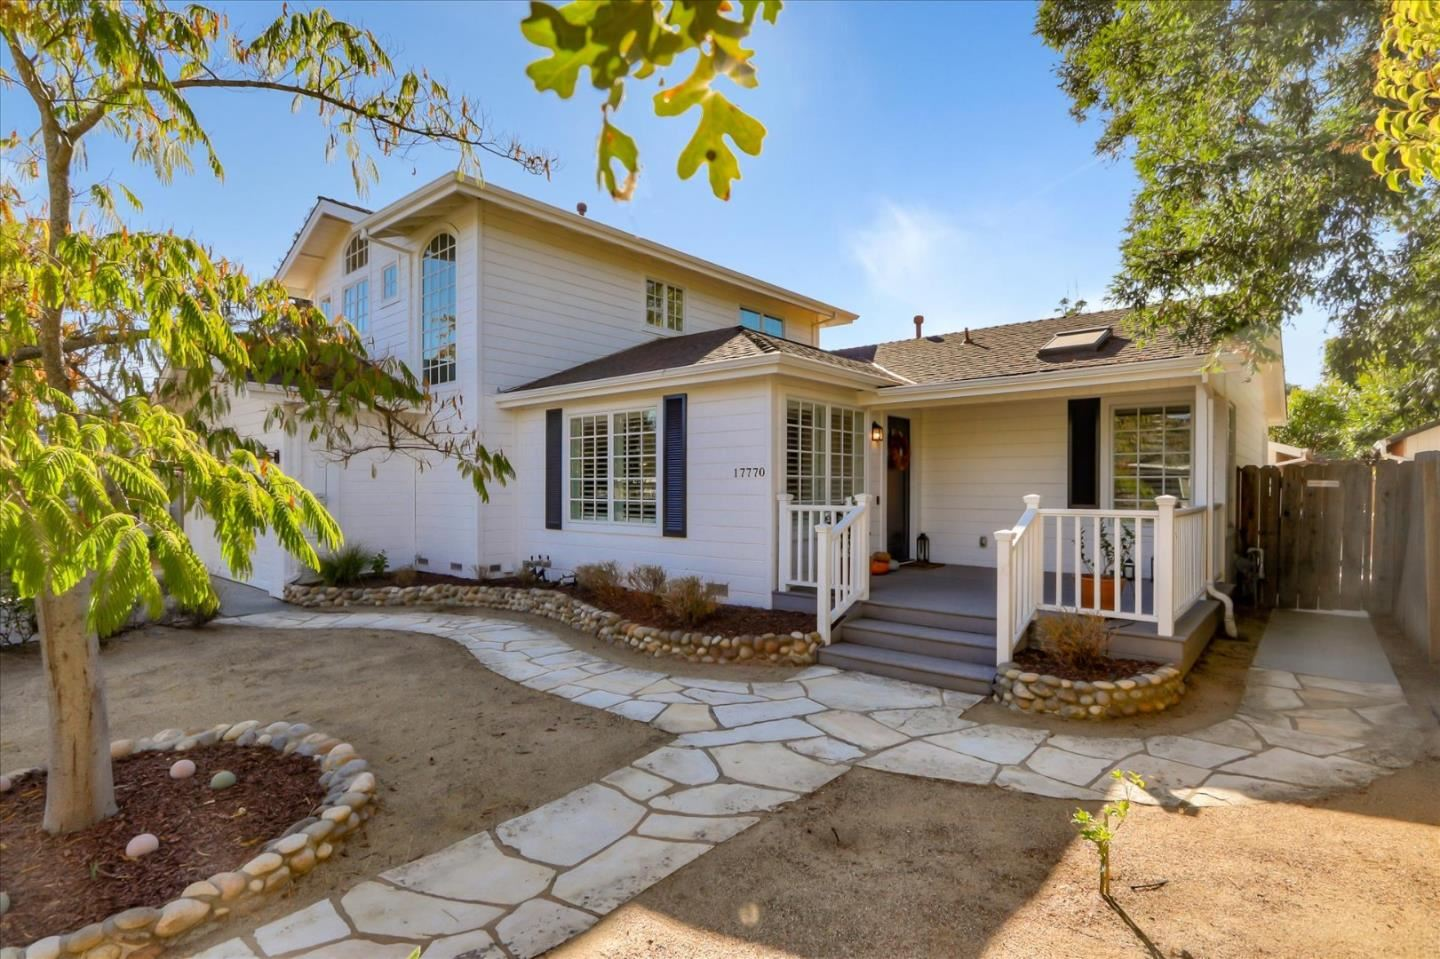 Photo for 17770 Vista AVE, MONTE SERENO, CA 95030 (MLS # ML81819885)